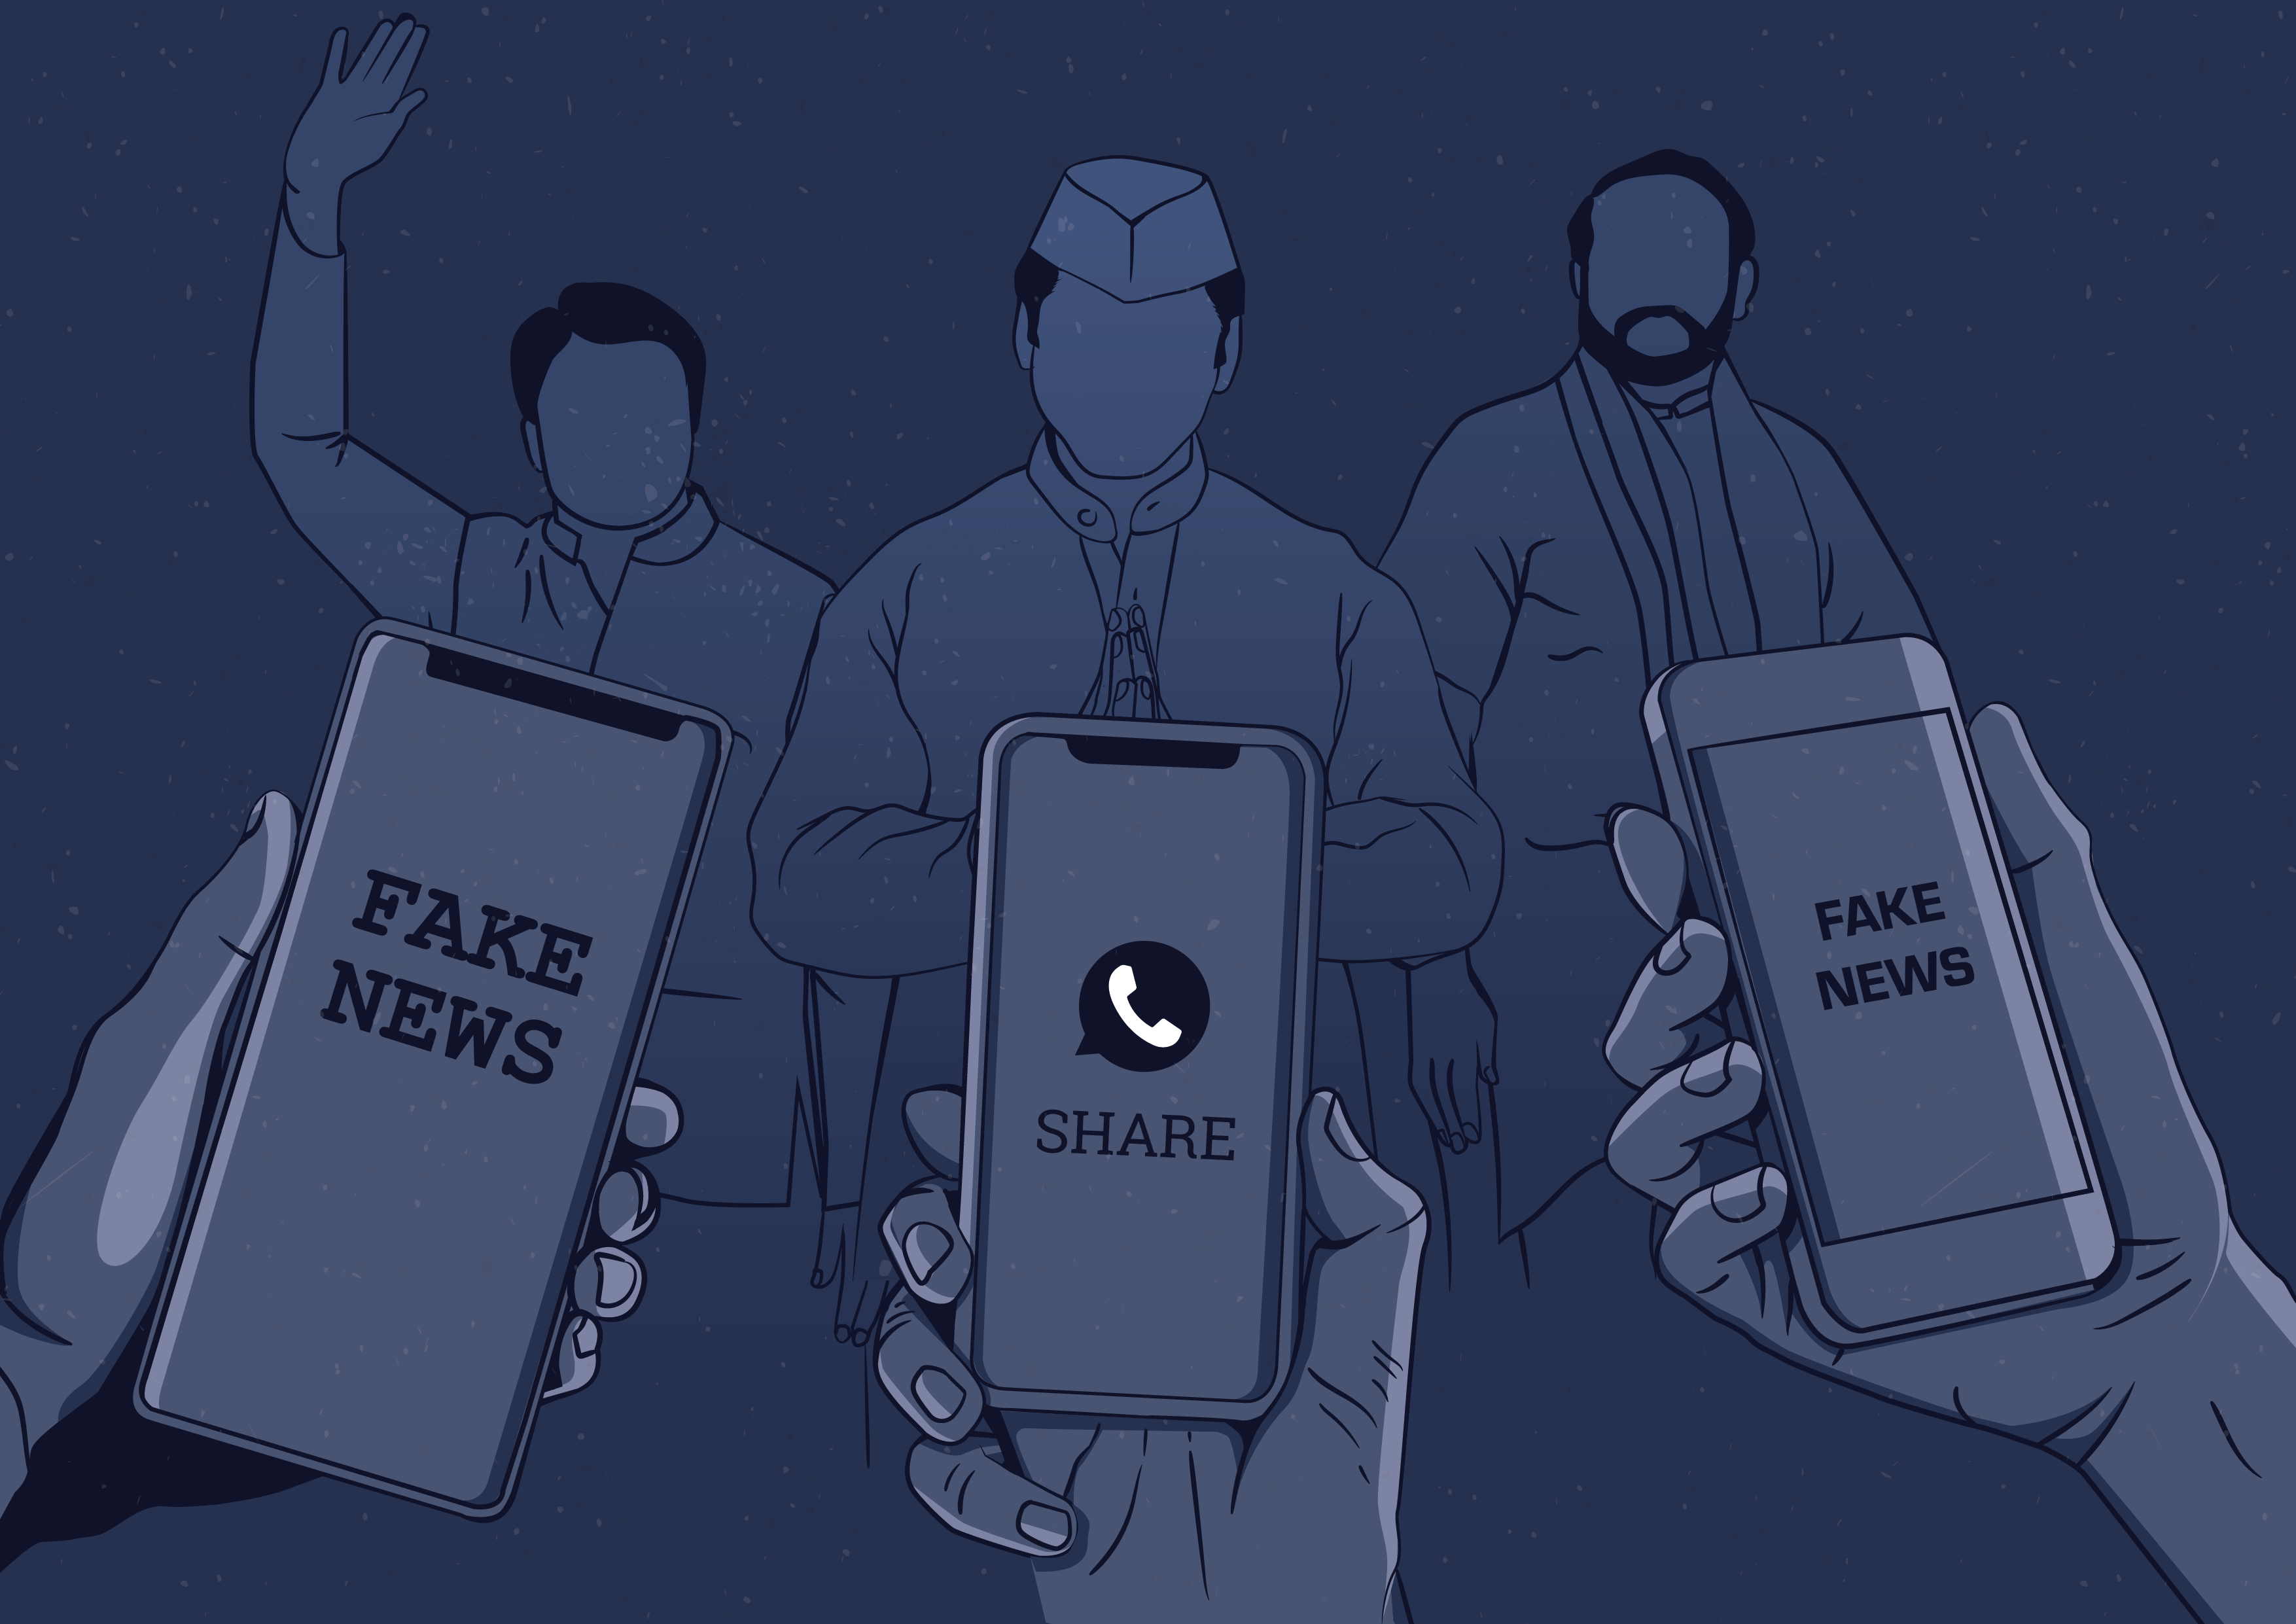 A drawn image of people in India holding mobile phones with fake news and share on the screens